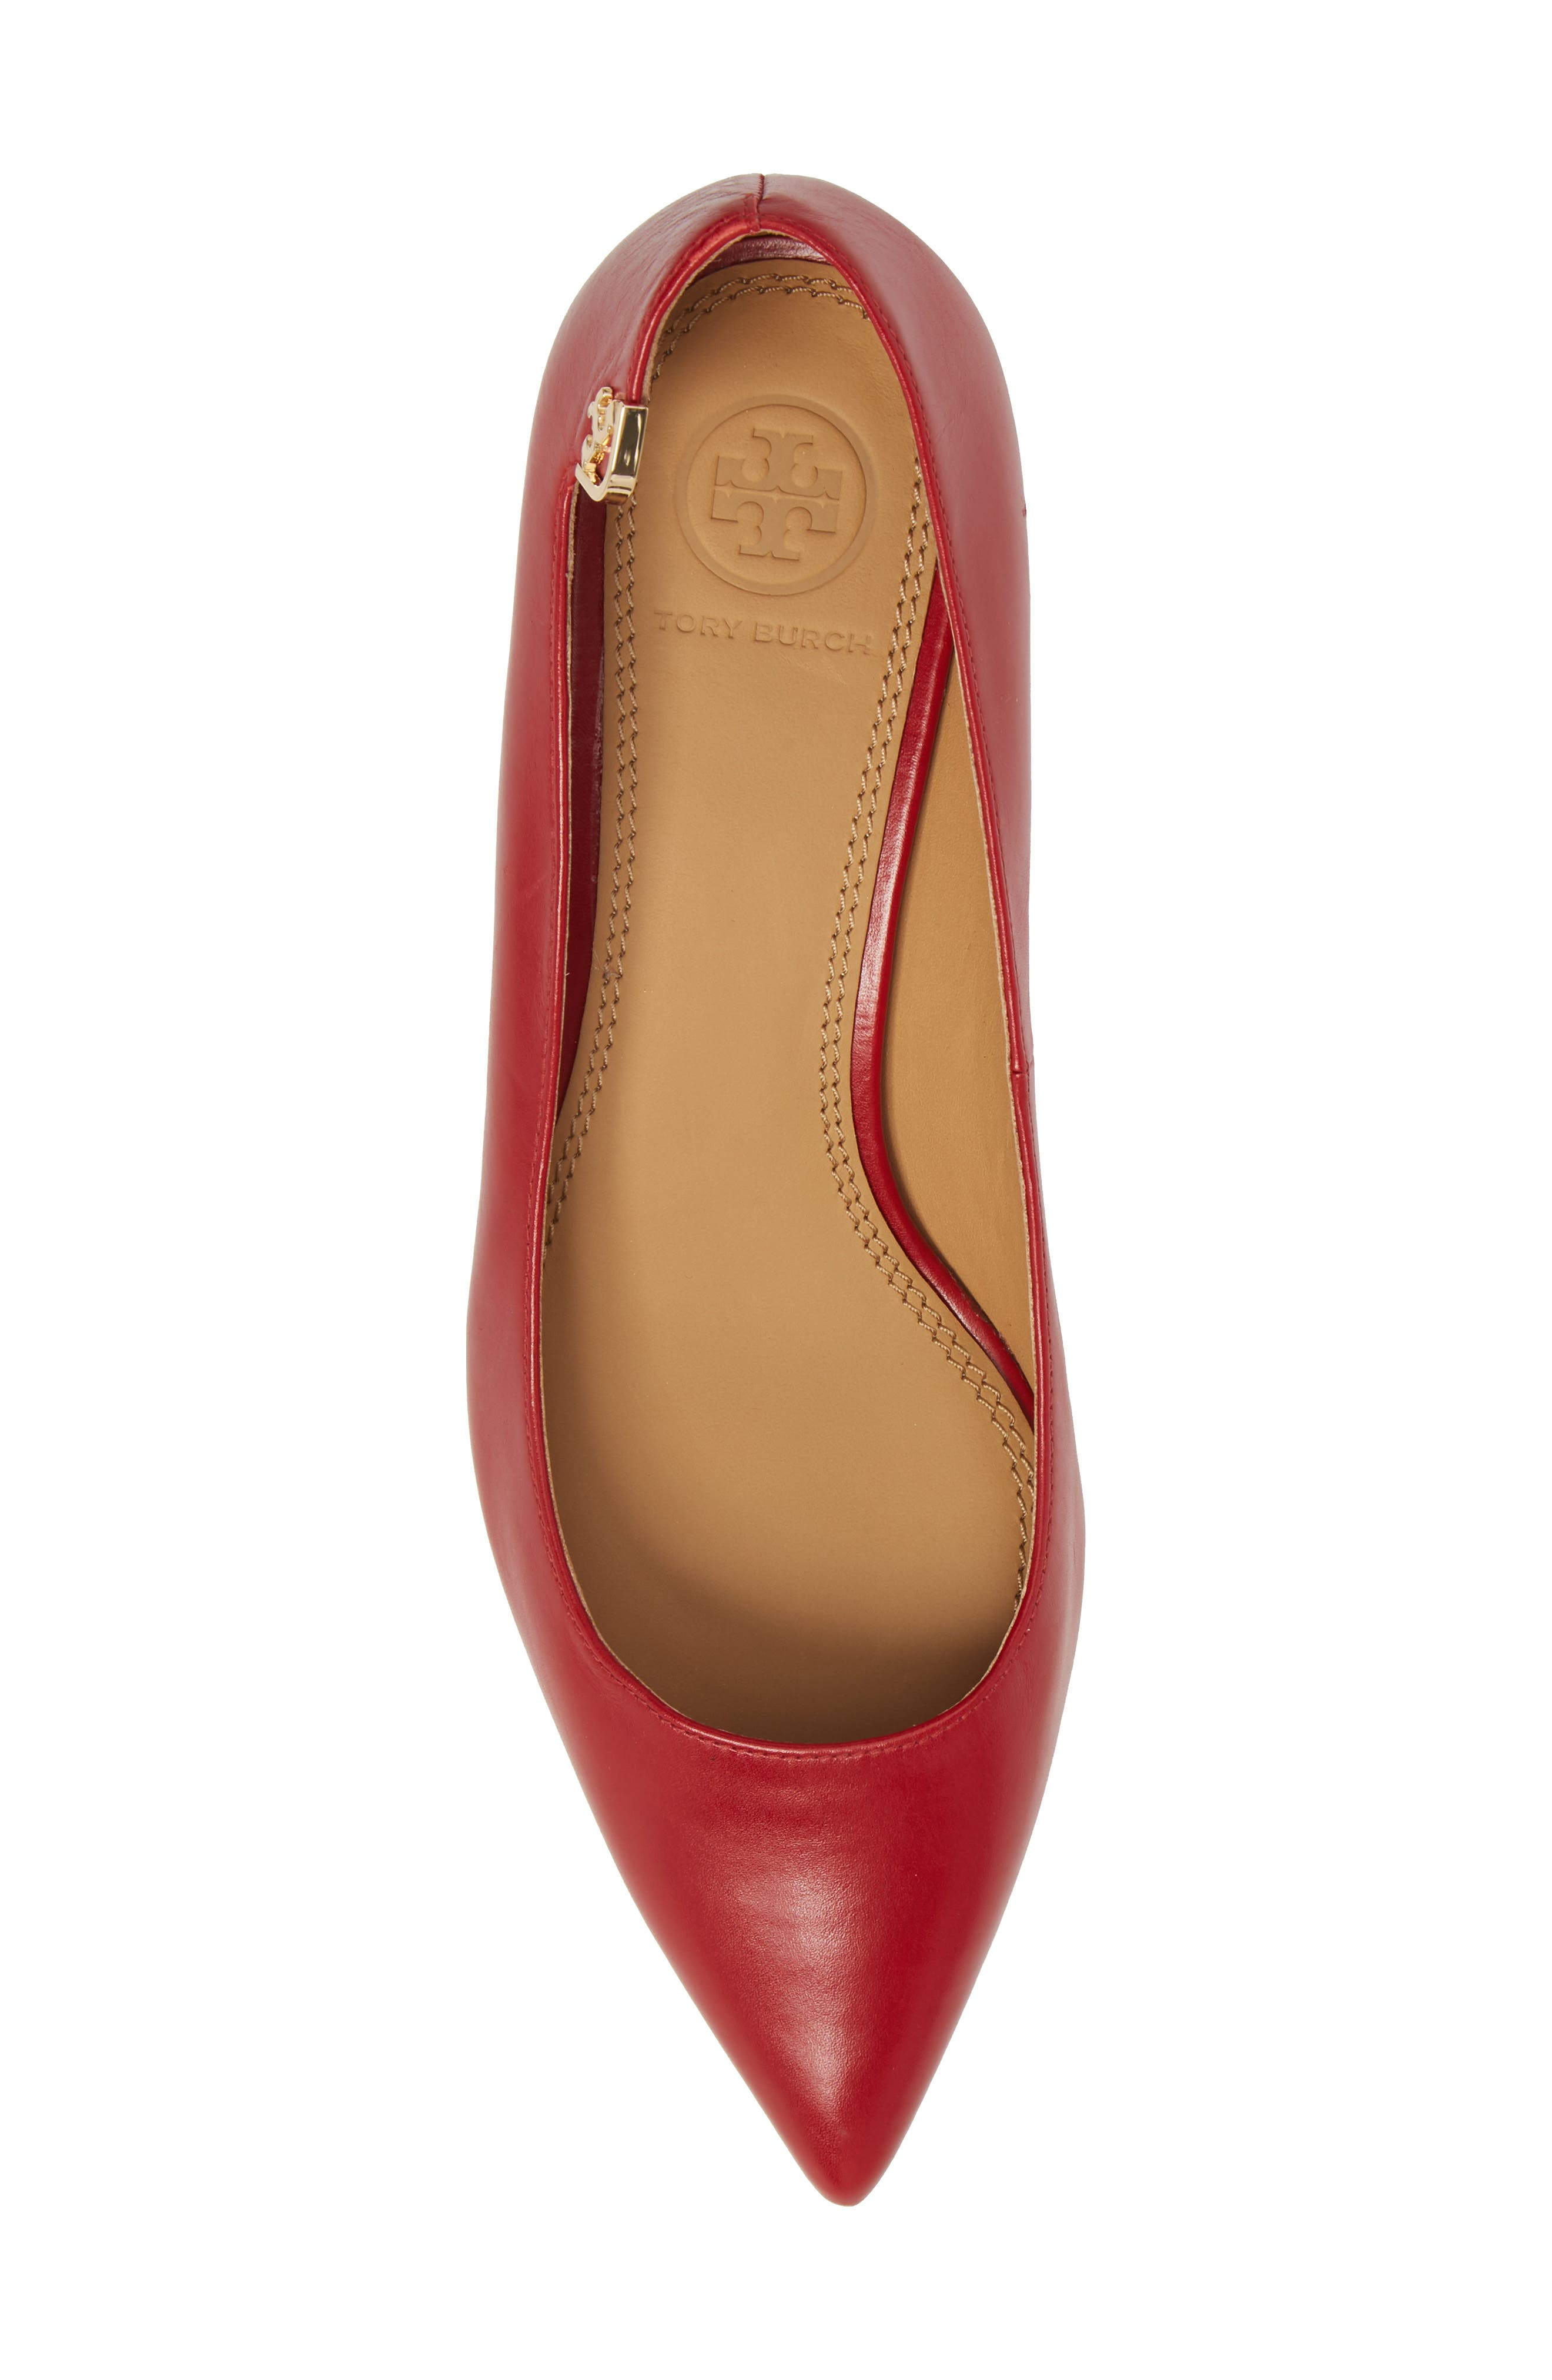 TORY BURCH,                             Elizabeth Pointy Toe Pump,                             Alternate thumbnail 5, color,                             601